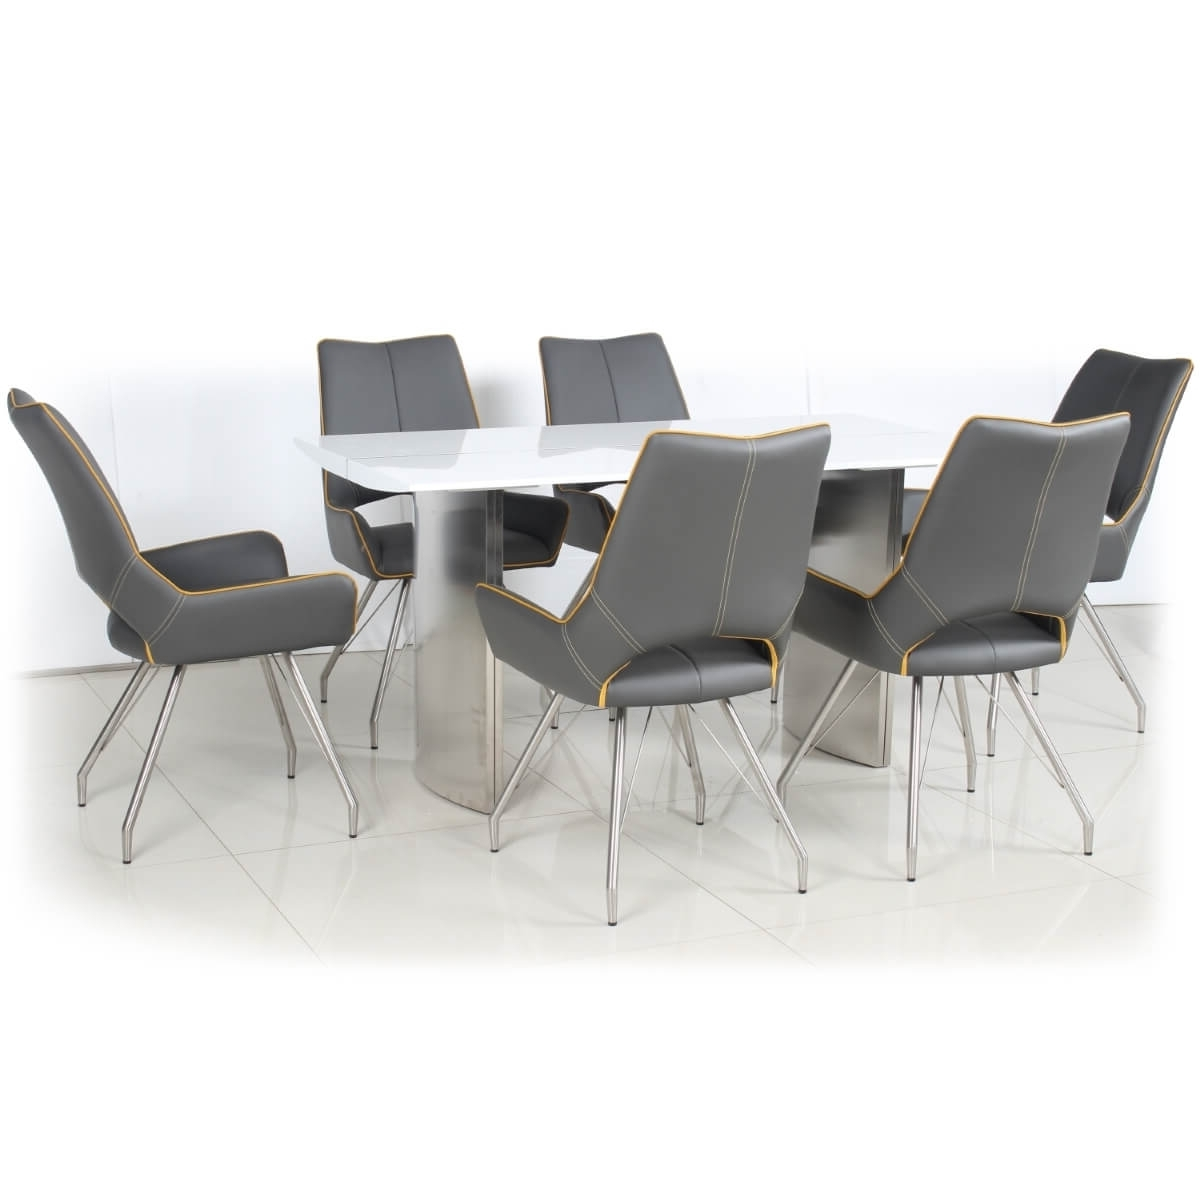 White Dining Tables And 6 Chairs In Favorite Dining Set – White High Gloss Dining Table And 6 Grey Dining Chairs (View 21 of 25)